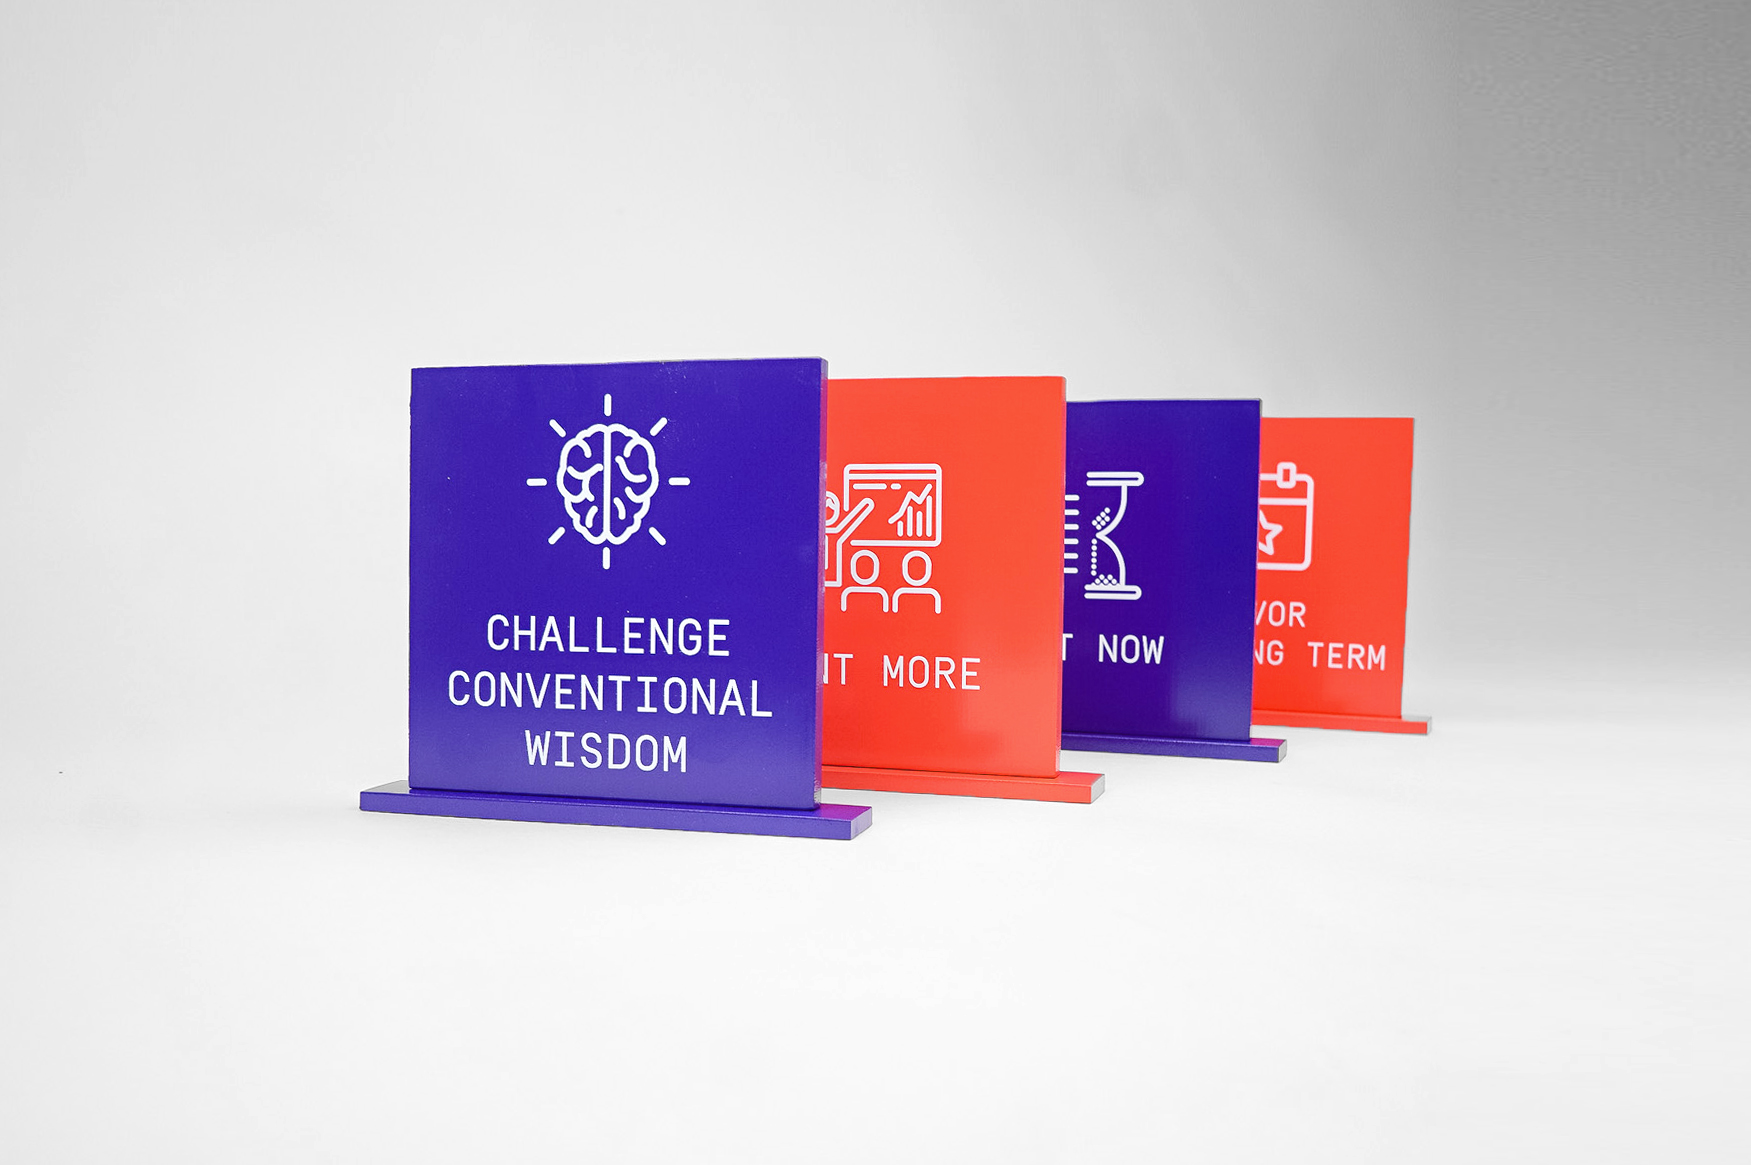 Red and purple painted tabletop company value plaques for the San Francisco office of Gong, makers of a conversation intelligence platform for sales.